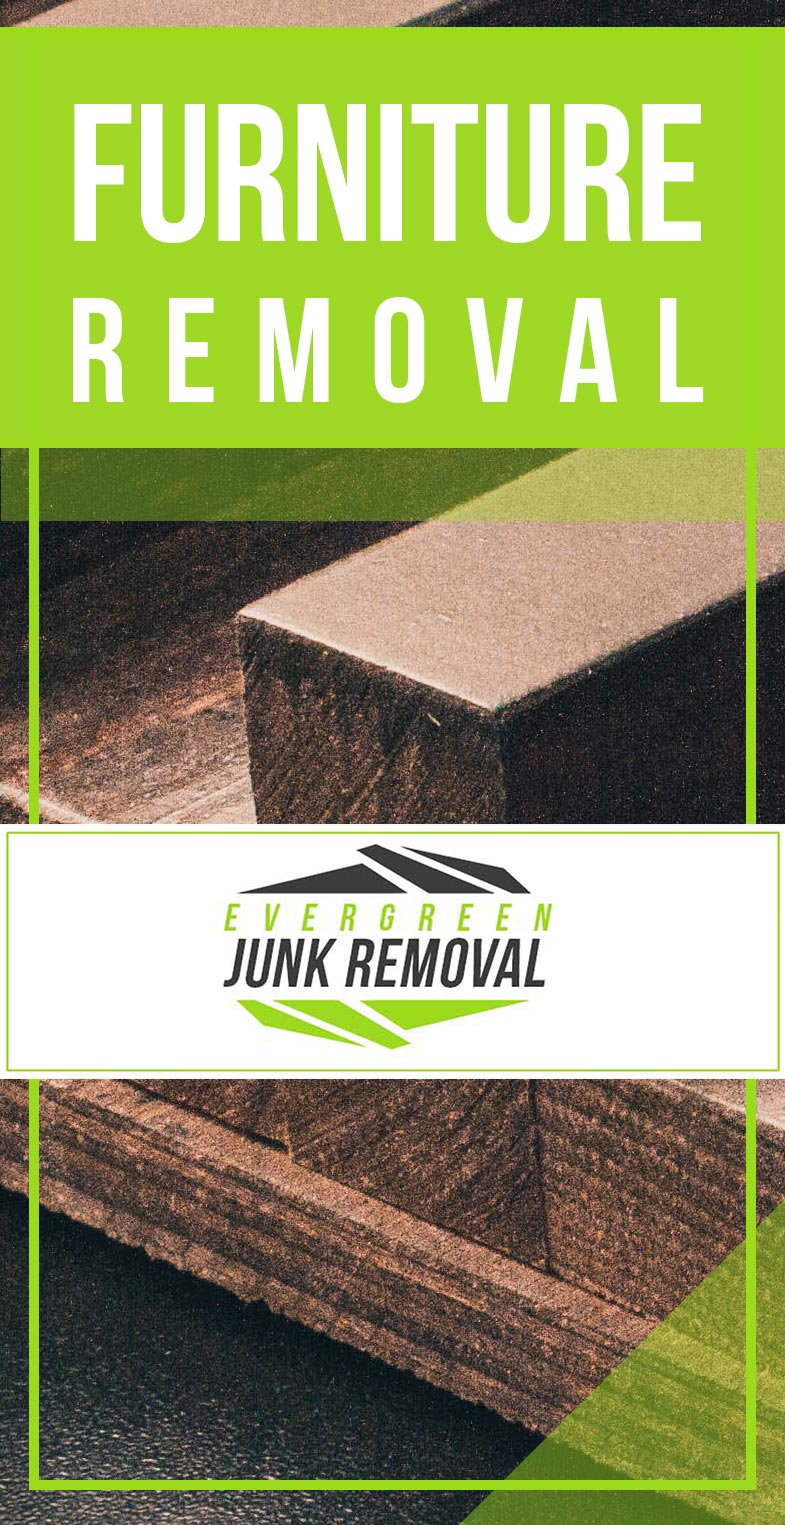 Junk Removal Oakland Park Furniture Removal